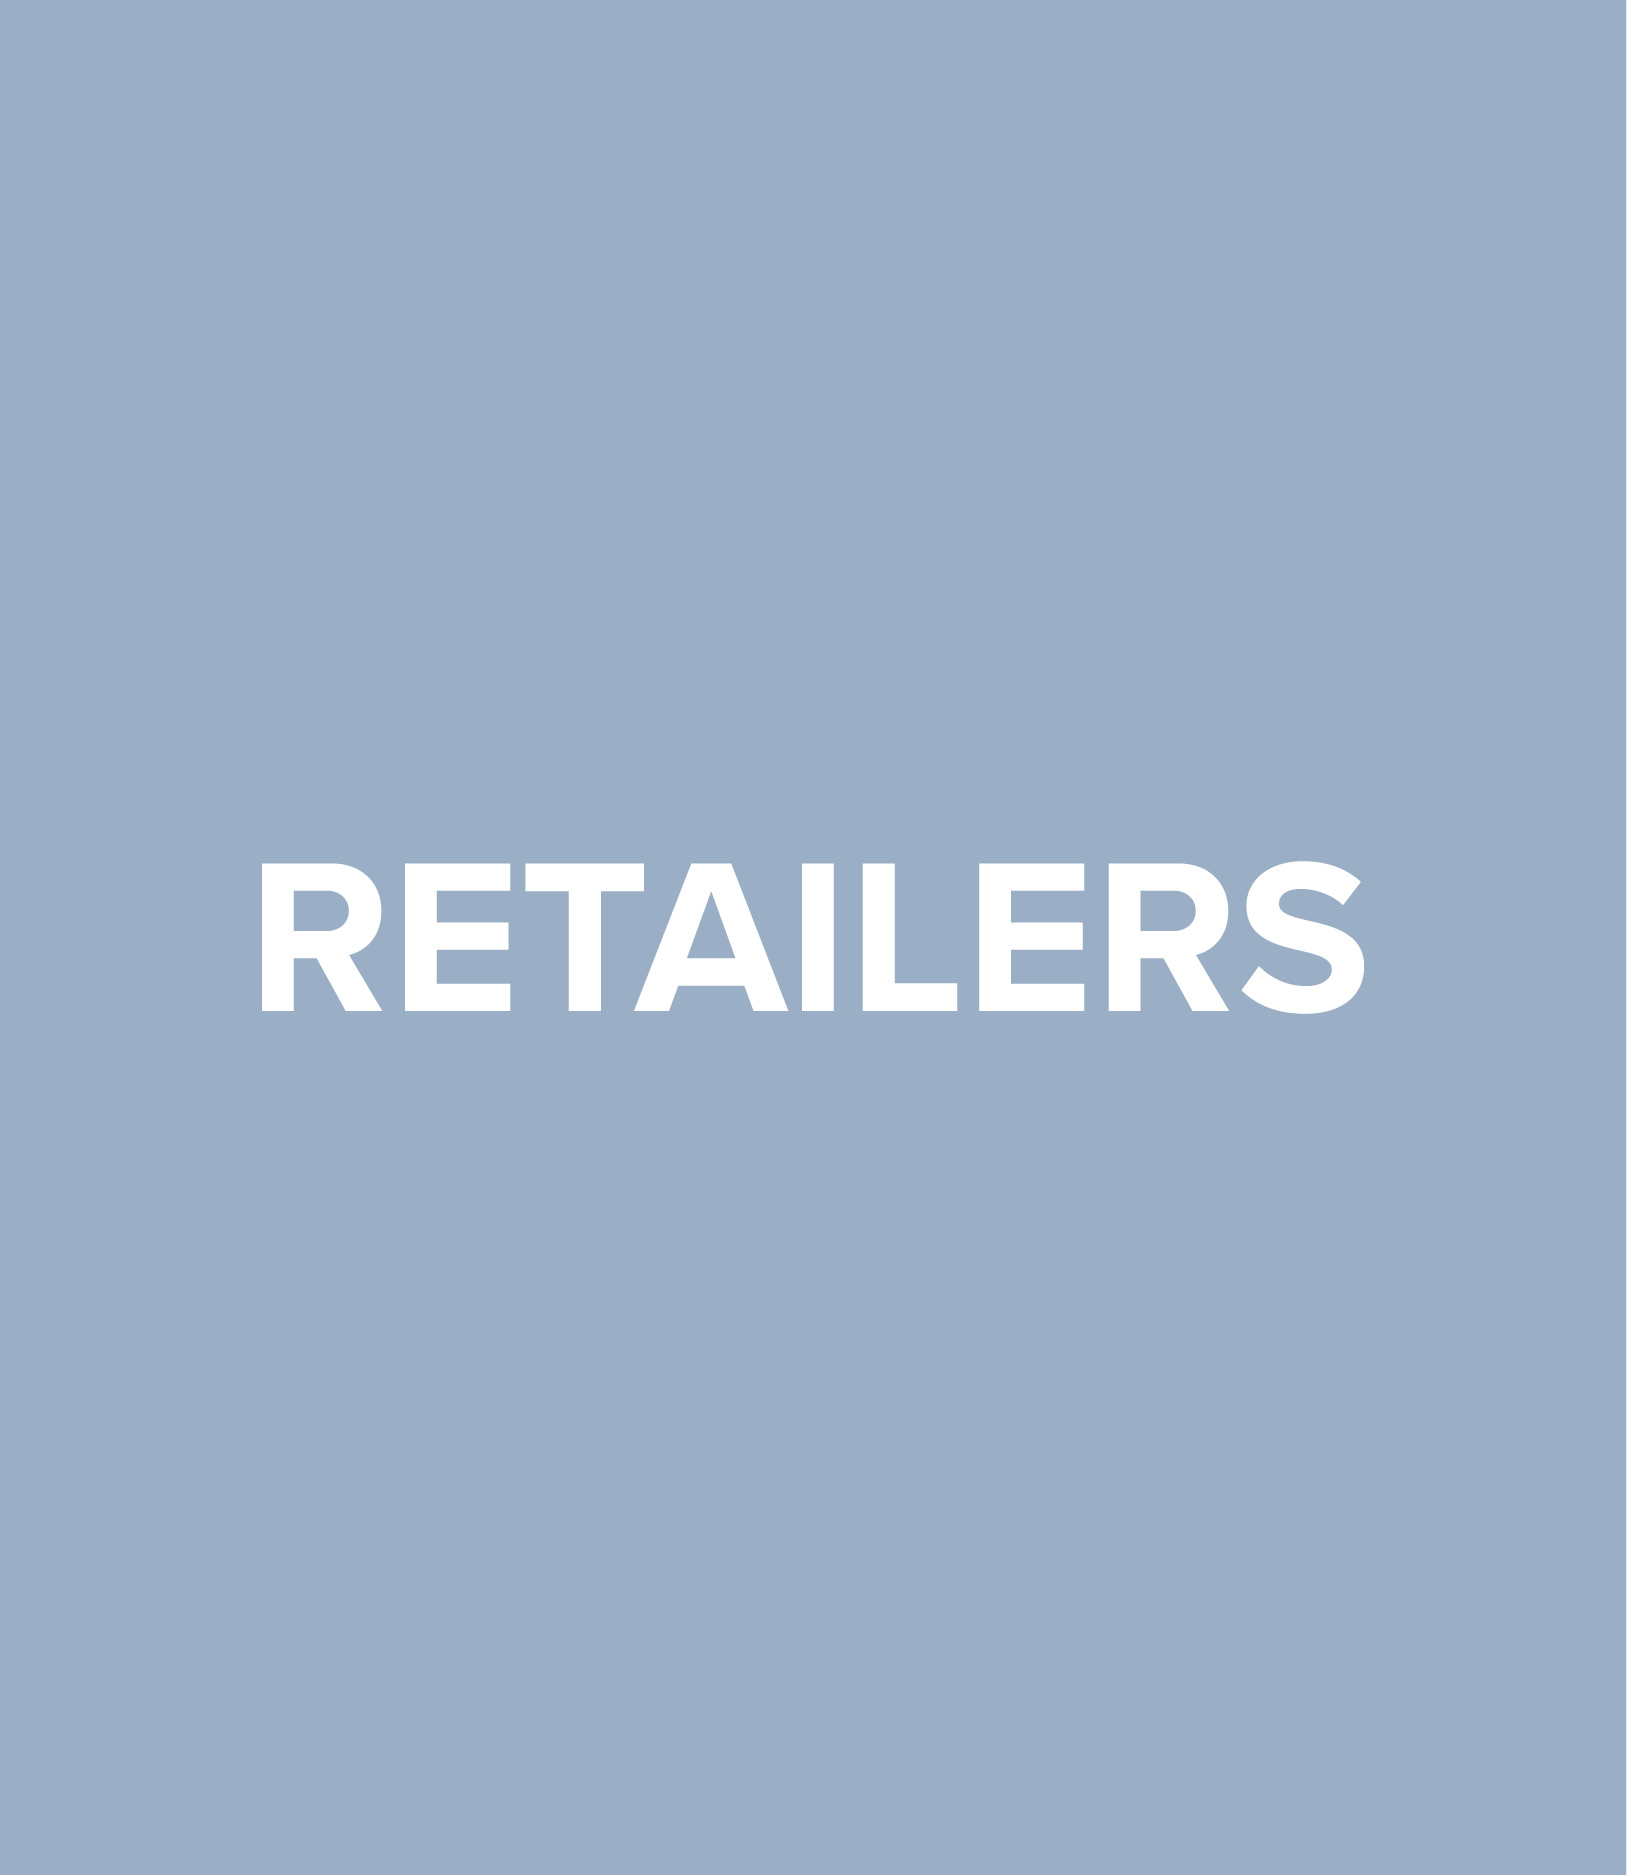 See a full list of all our Retailers